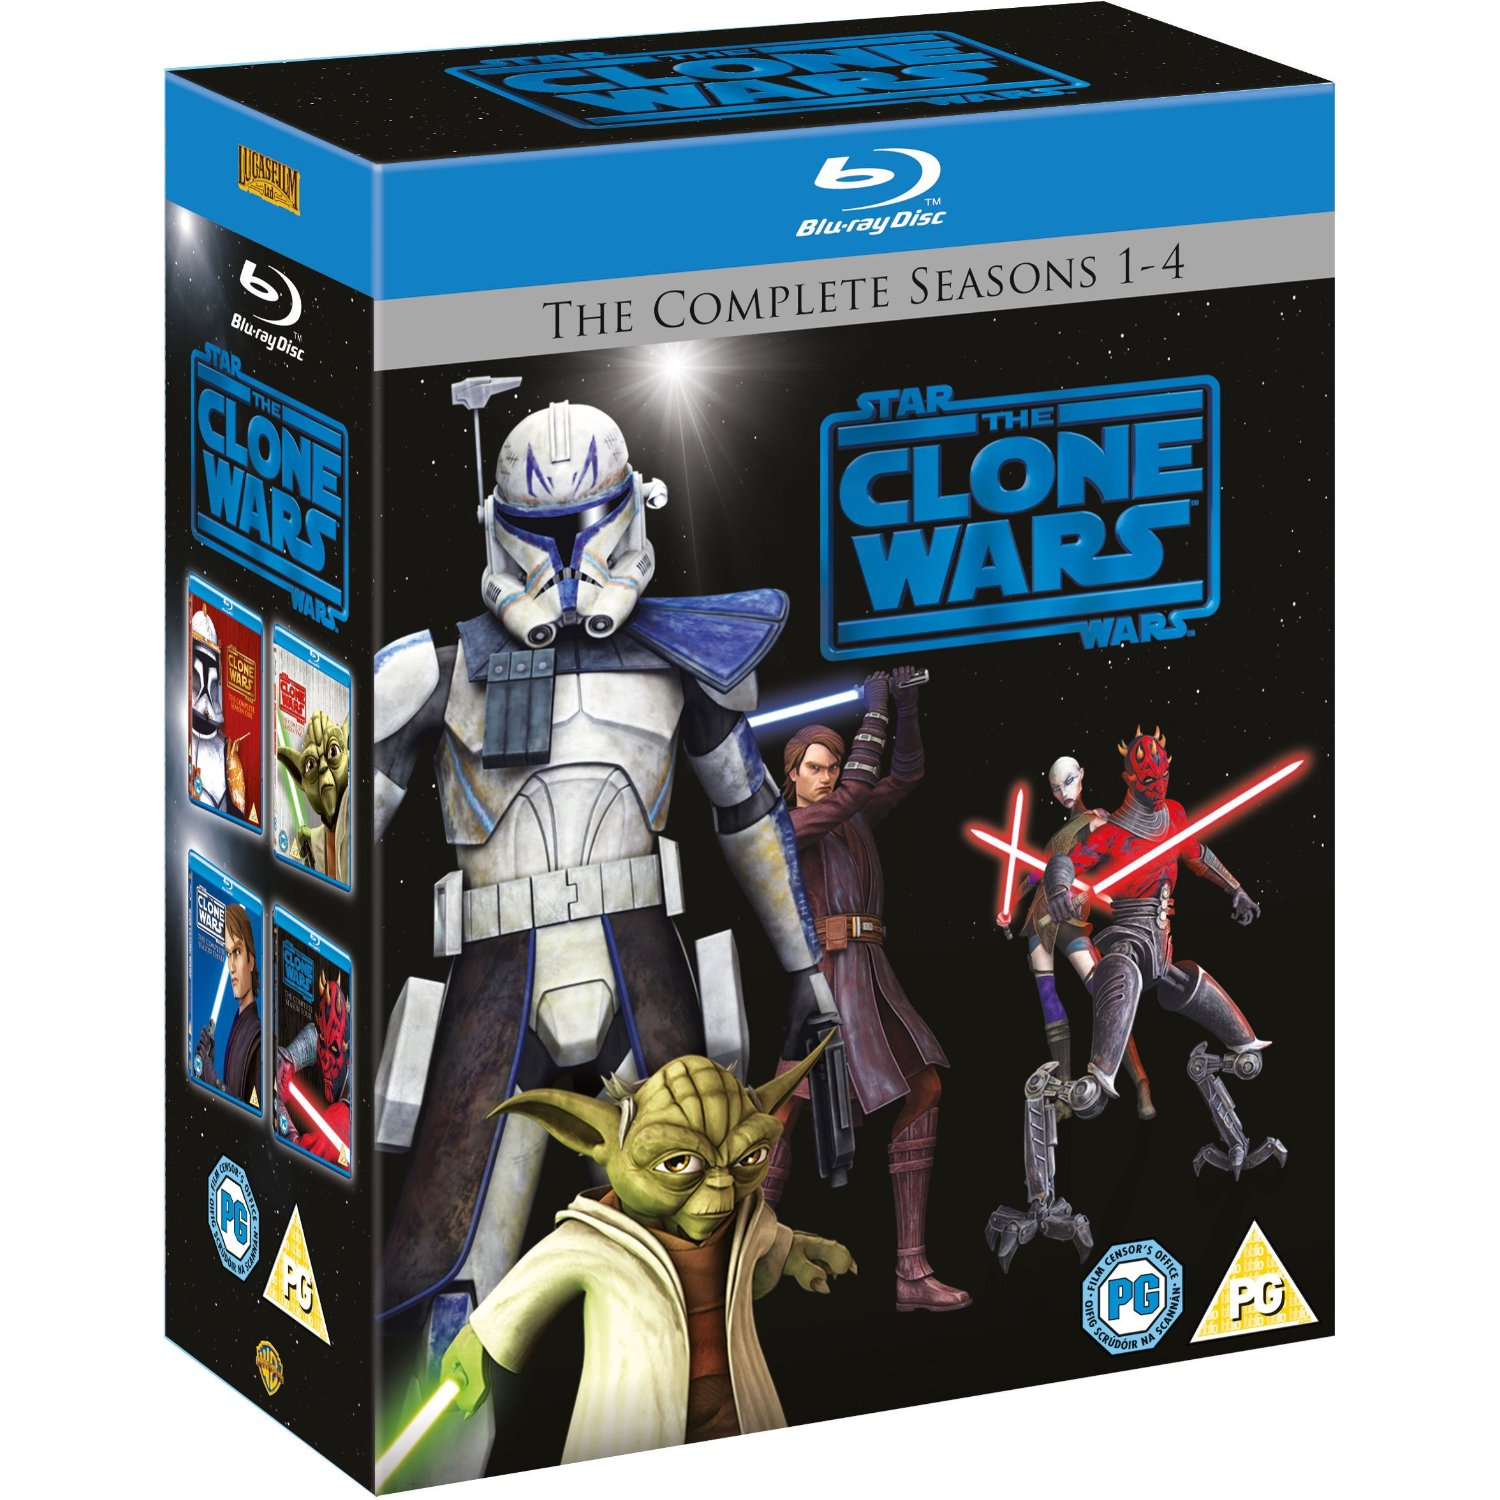 Star-wars-clone-season-blu-ray/dp/b005yyclhw/ref=sr18?ie=utf8&;qid